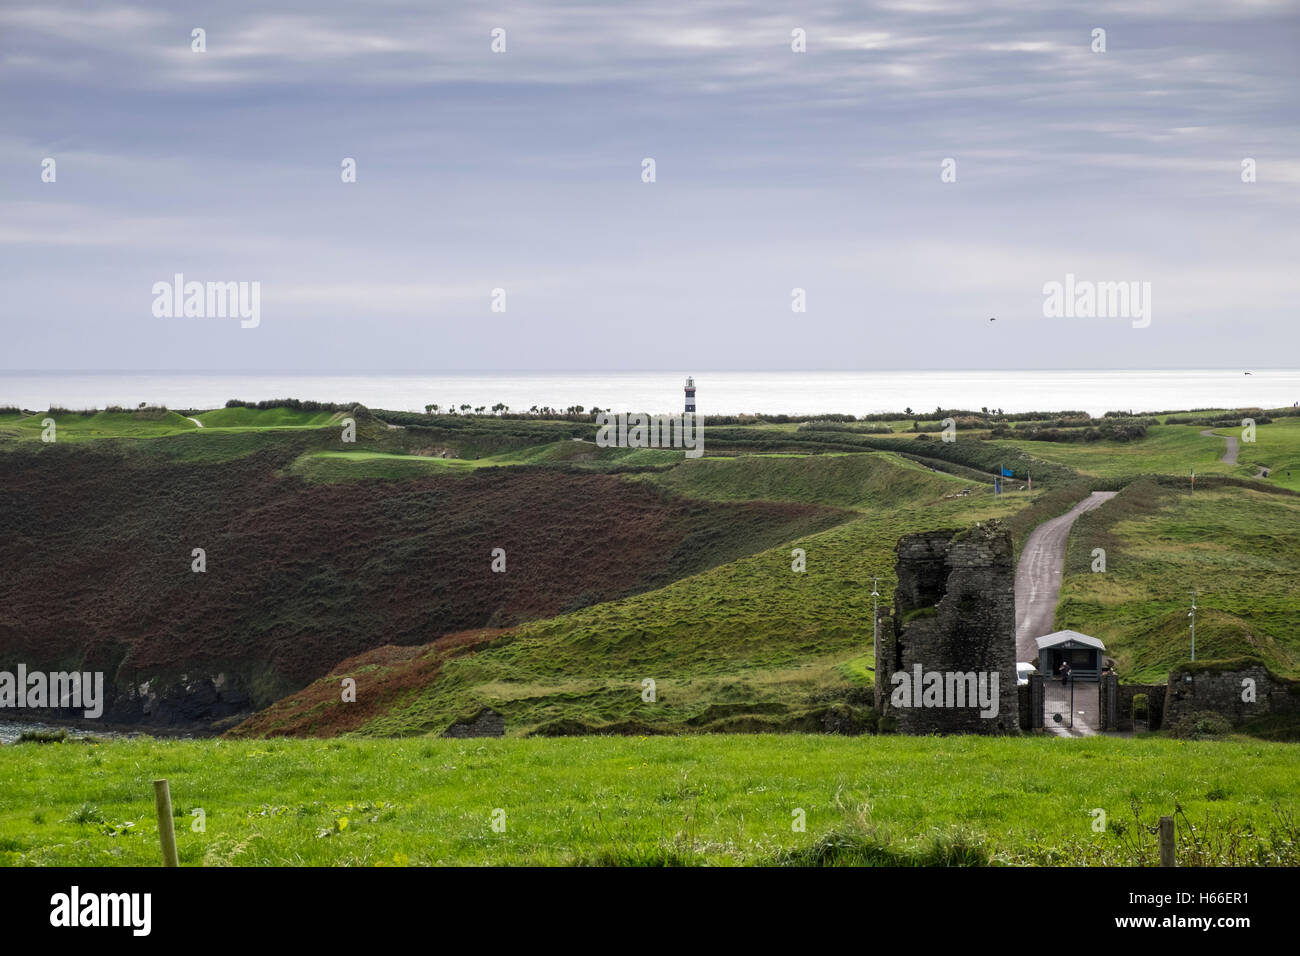 The old Head of Kinsale golf links and lighthouse, County Cork, Ireland. - Stock Image